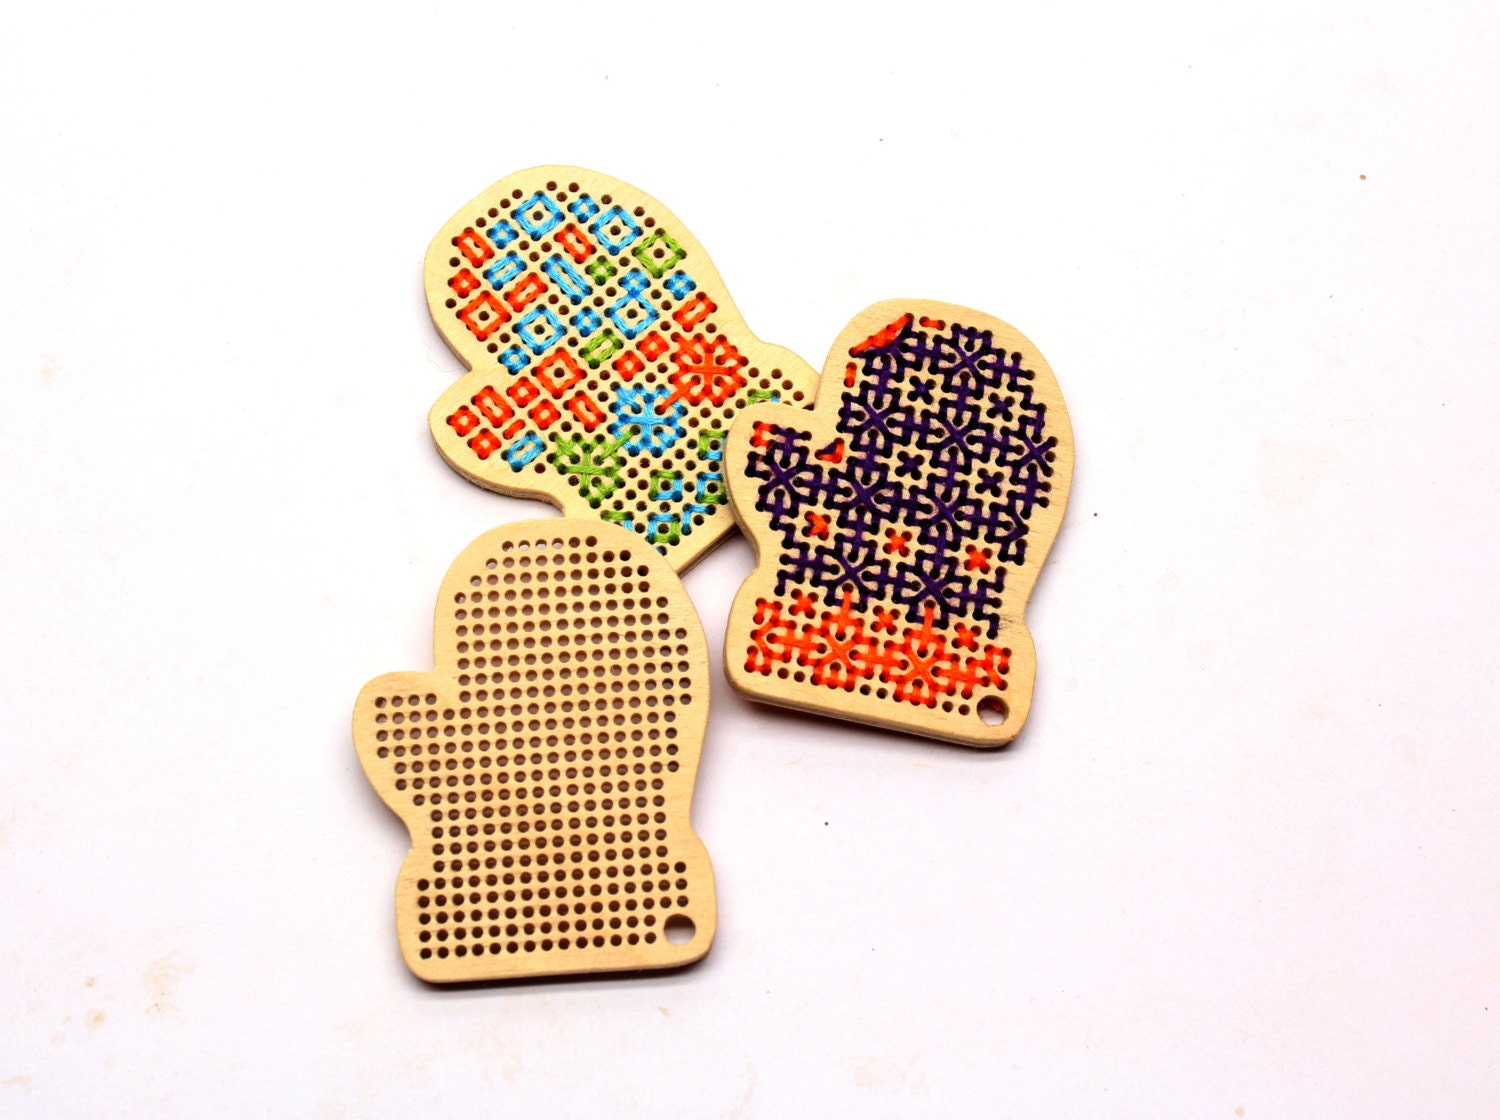 Diy wooden cross stitch blanks mittens unfinished